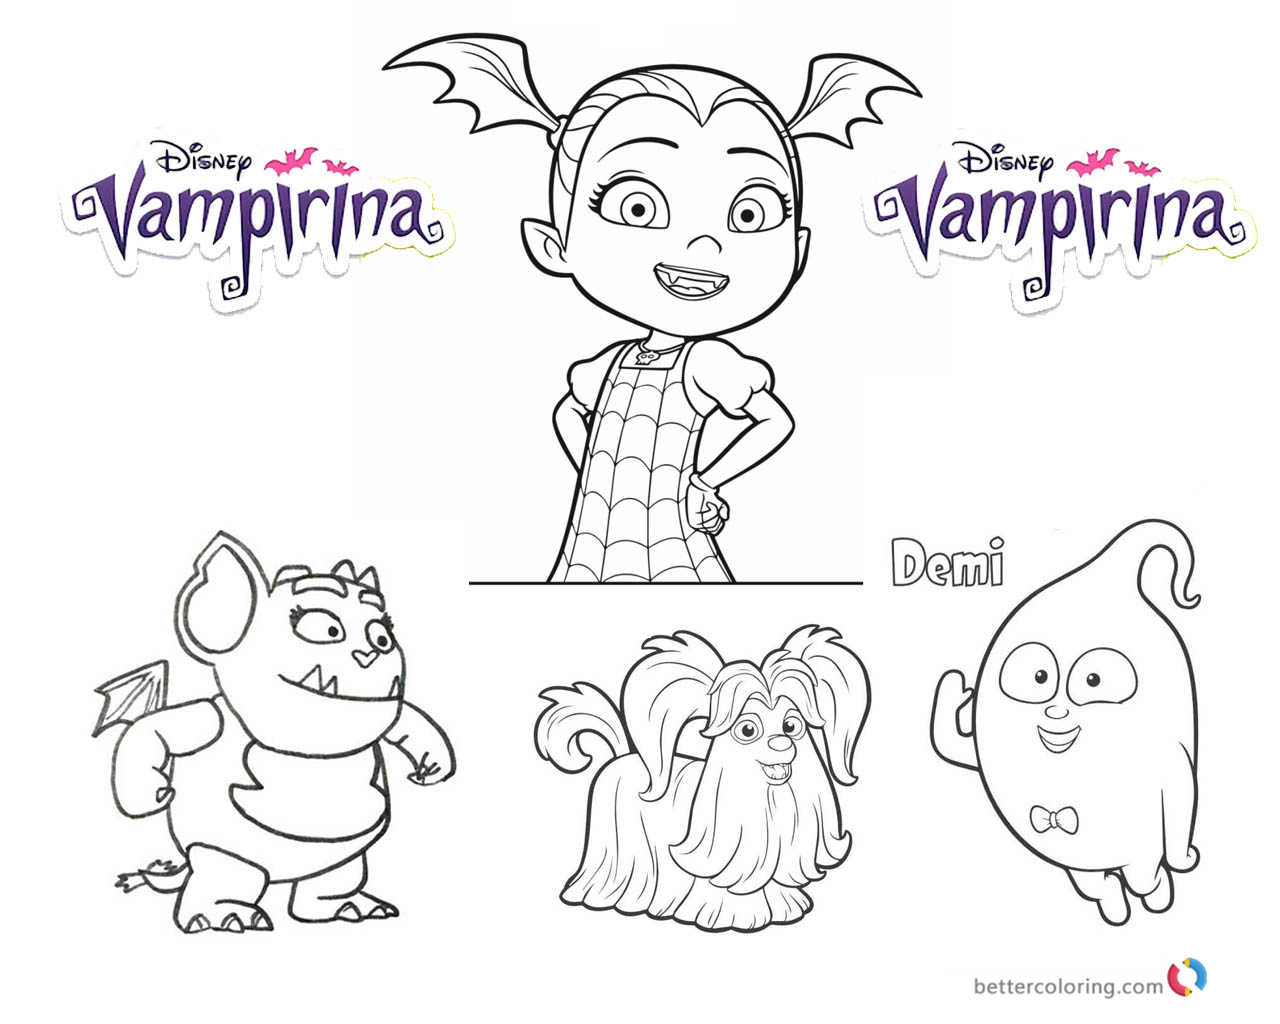 Vampirina Coloring Pages Vampirina And Cute Characters